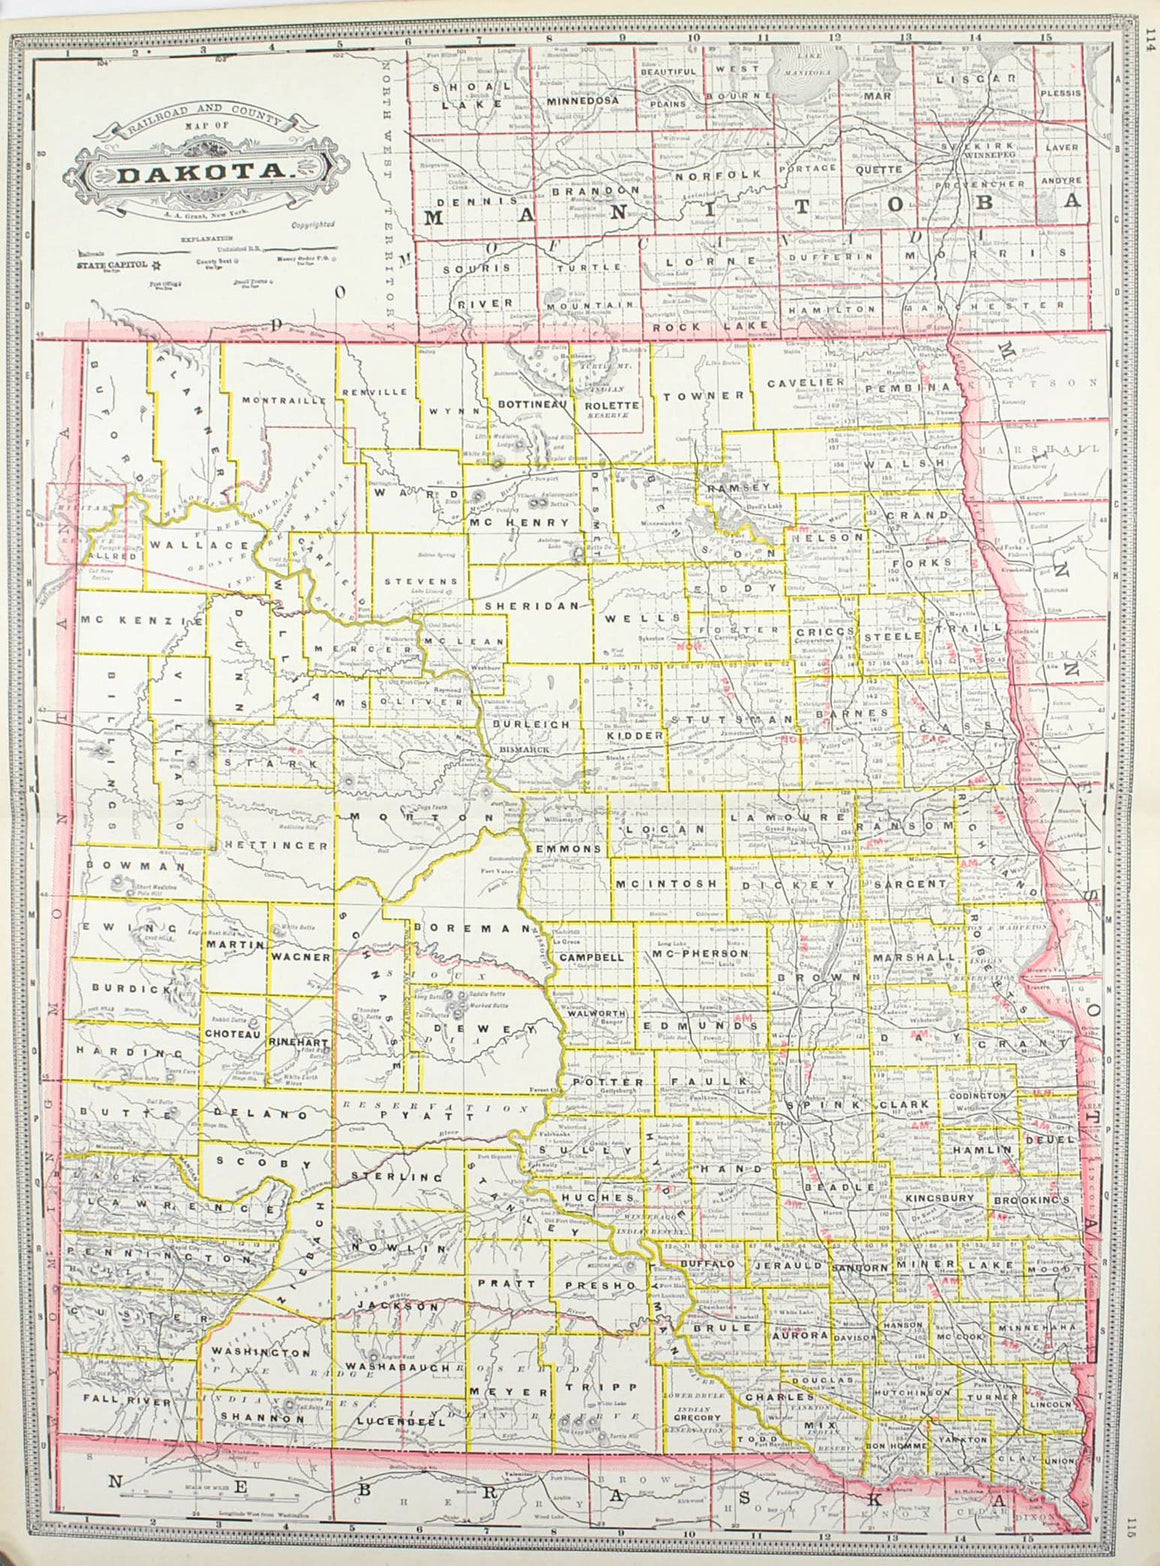 1887 Railroad and County Map of Dakoda